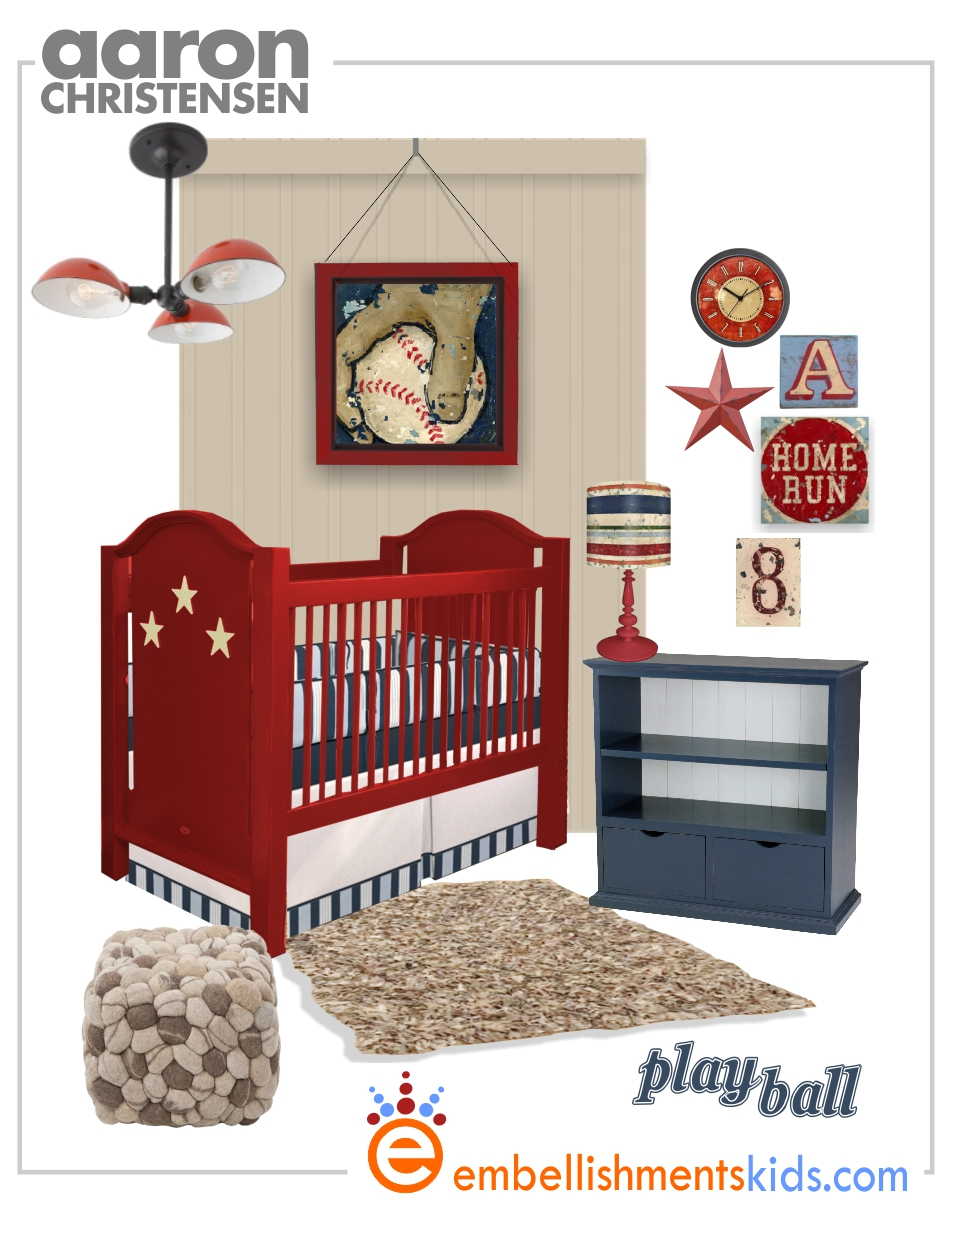 Embellishments Kids Boys Rooms And Nursery Ideas 15